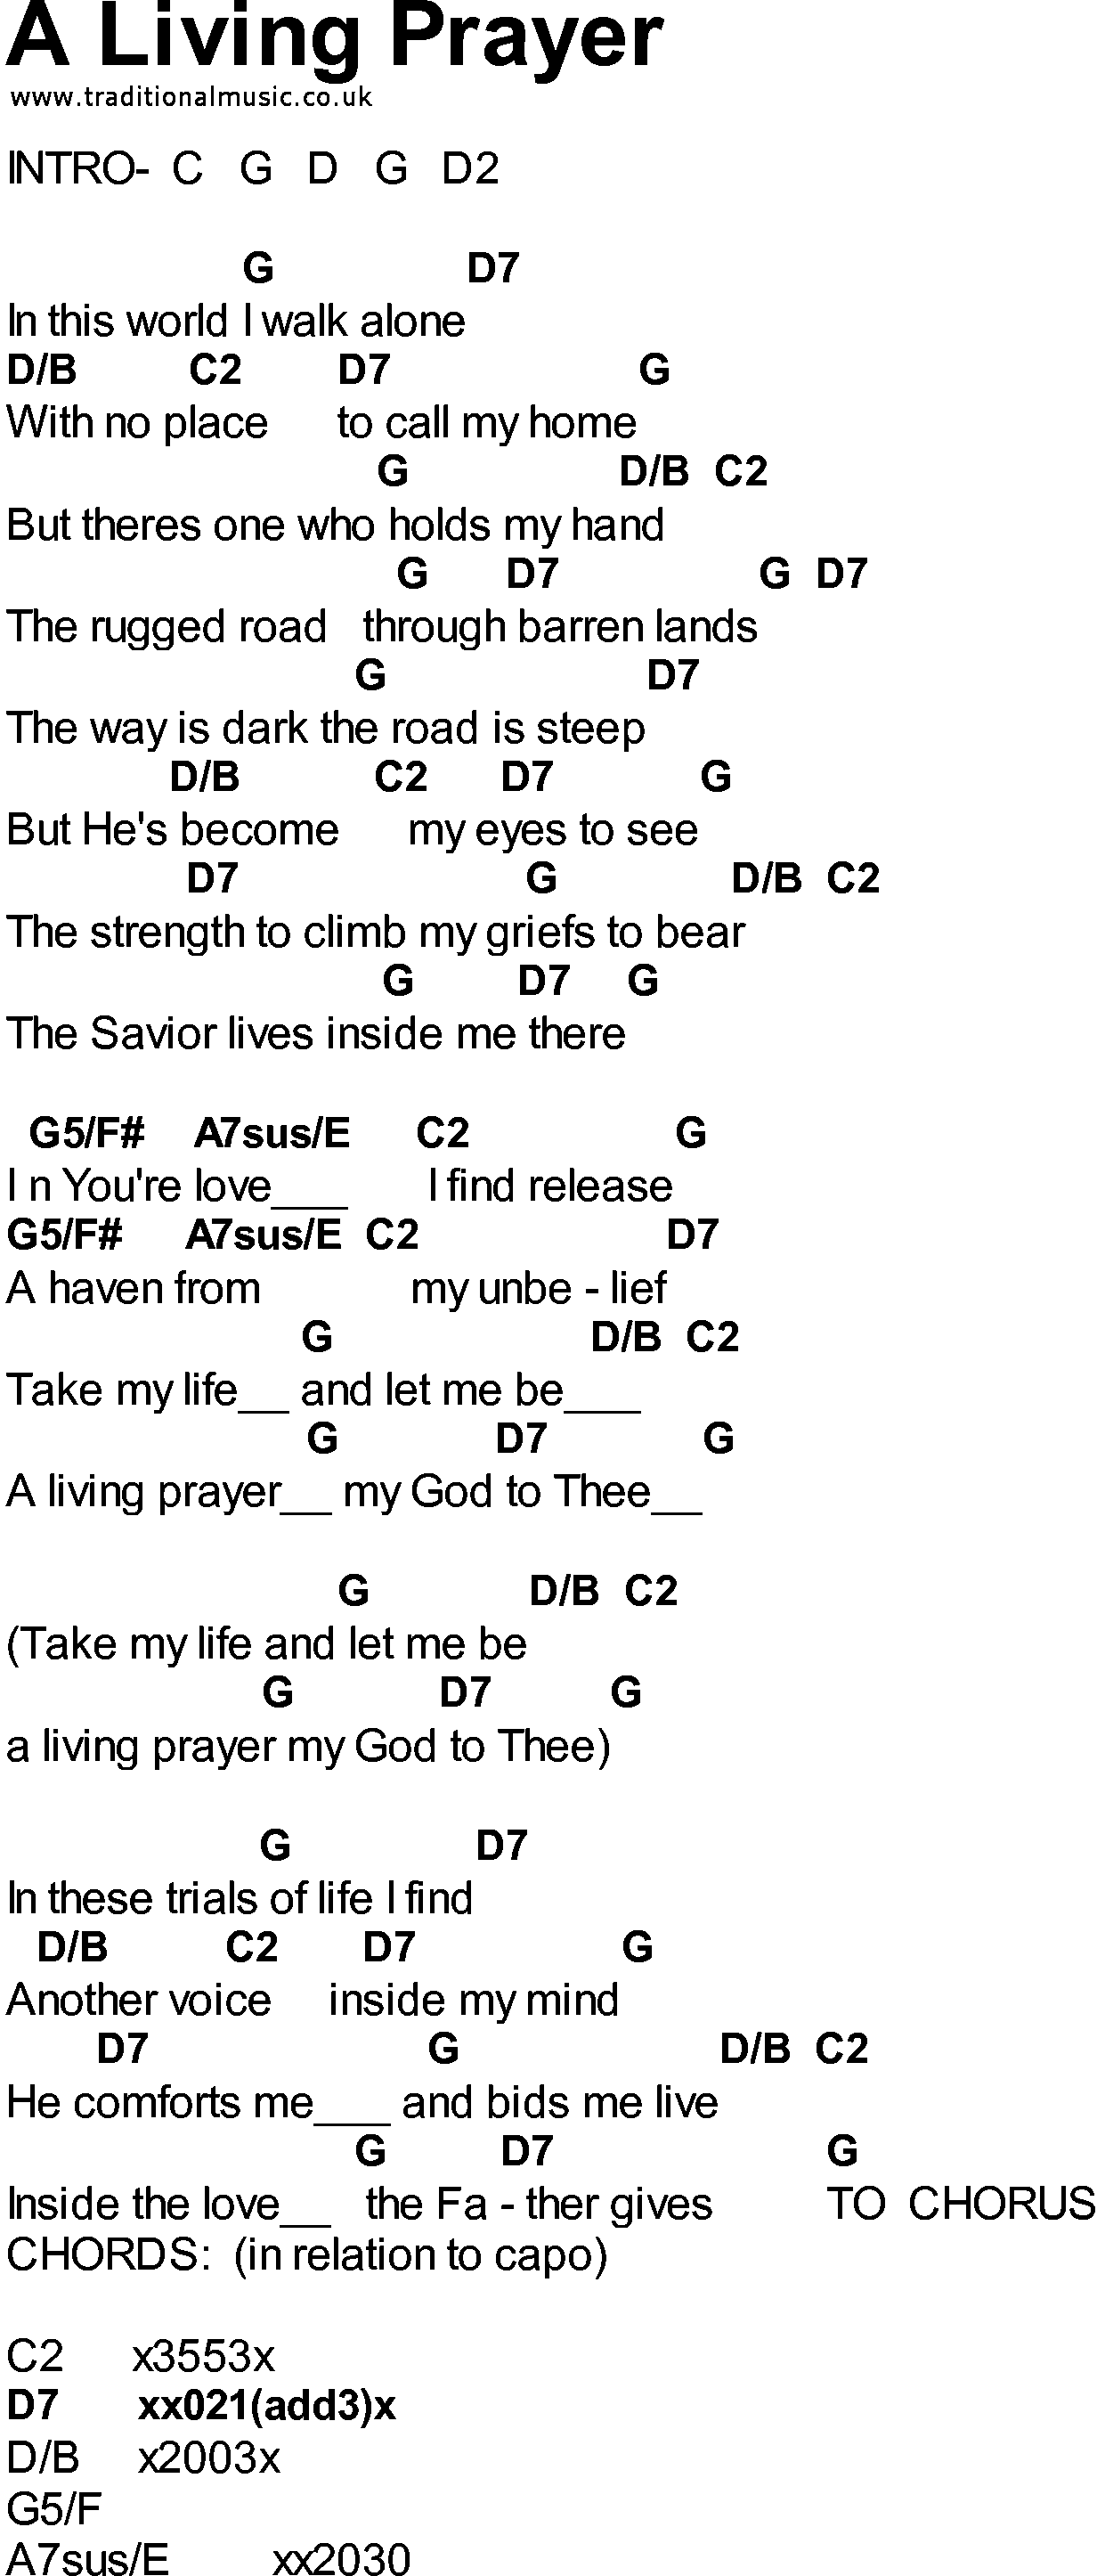 Bluegrass Songs With Chords A Living Prayer